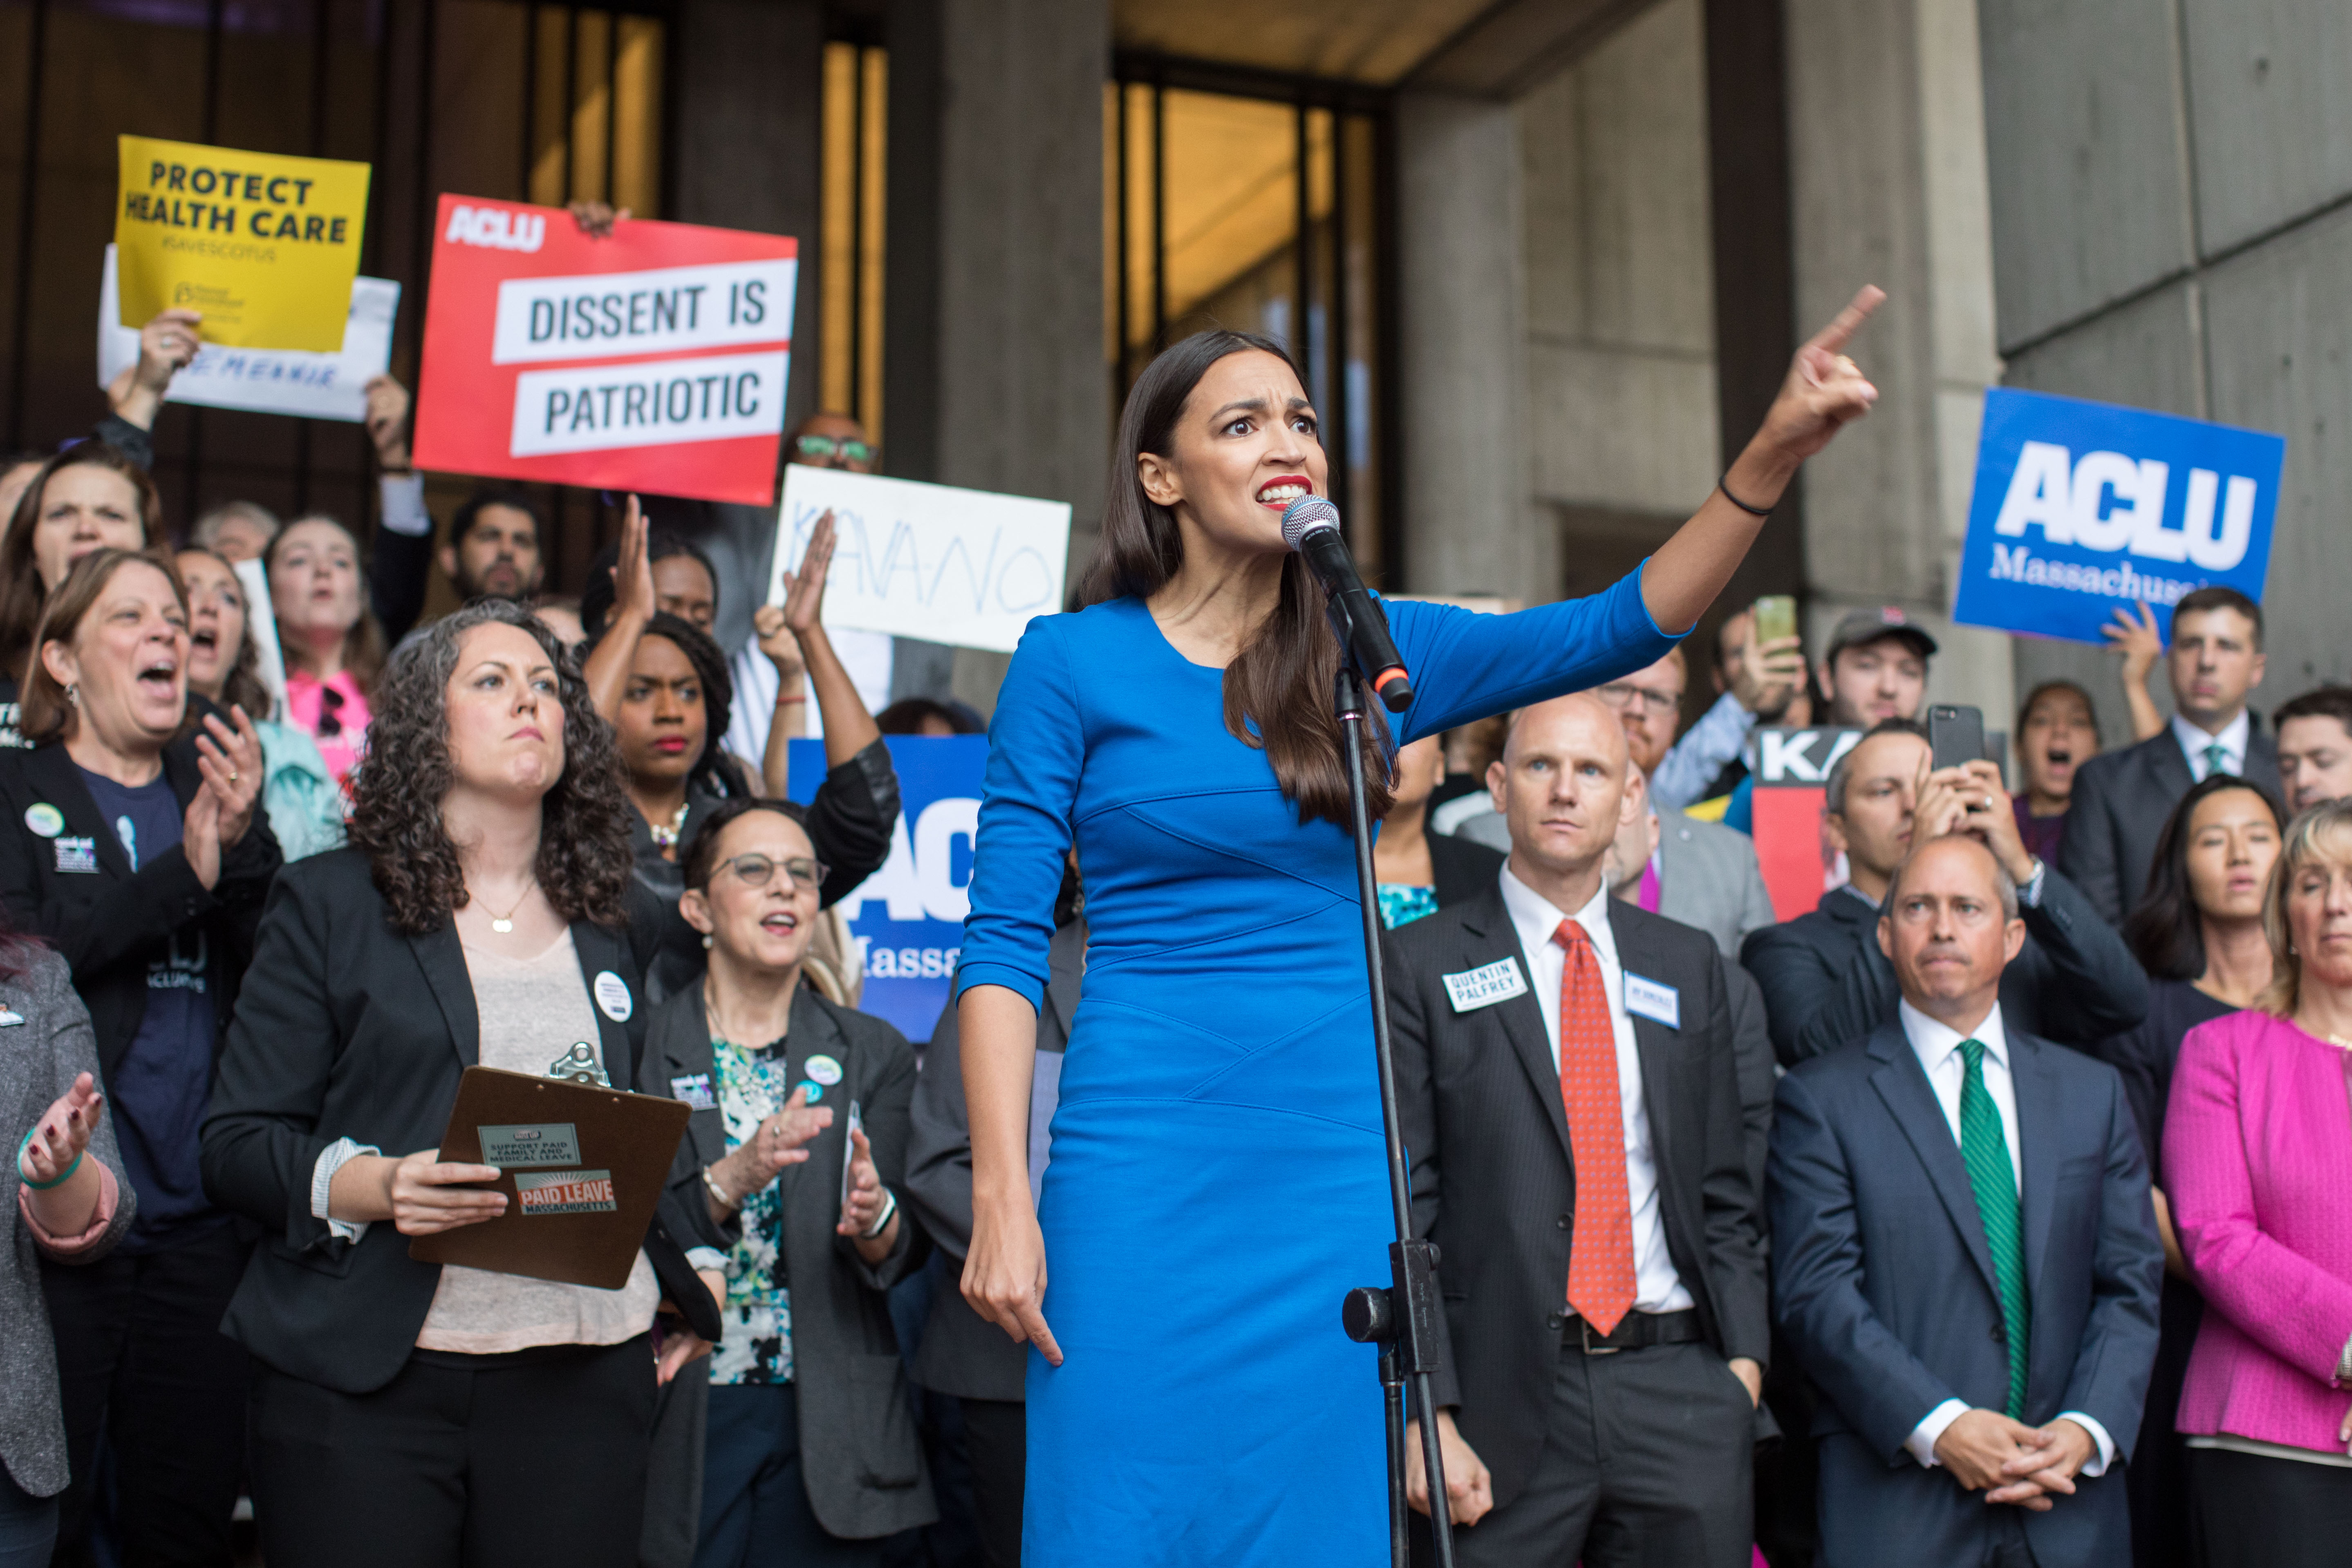 New York Democratic congressional candidate Alexandria Ocasio-Cortez speaks at a rally calling on Sen. Jeff Flake (R-AZ) to reject Judge Brett Kavanaugh's nomination to the Supreme Court on October 1, 2018 in Boston, Massachusetts. (Photo by Scott Eisen/Getty Images)